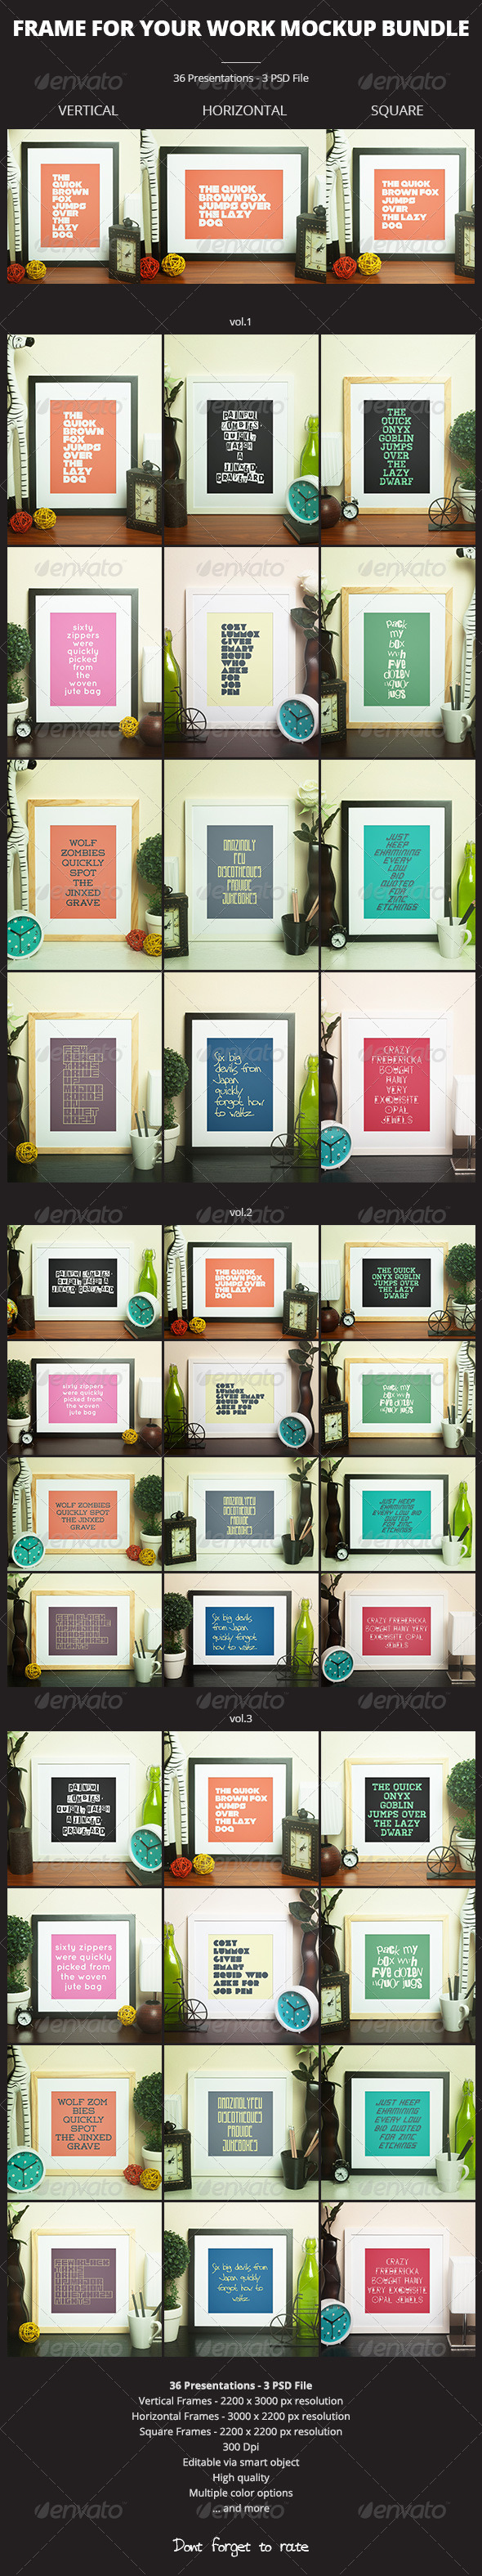 GraphicRiver Frame For Your Work Mockup Bundle 6902275